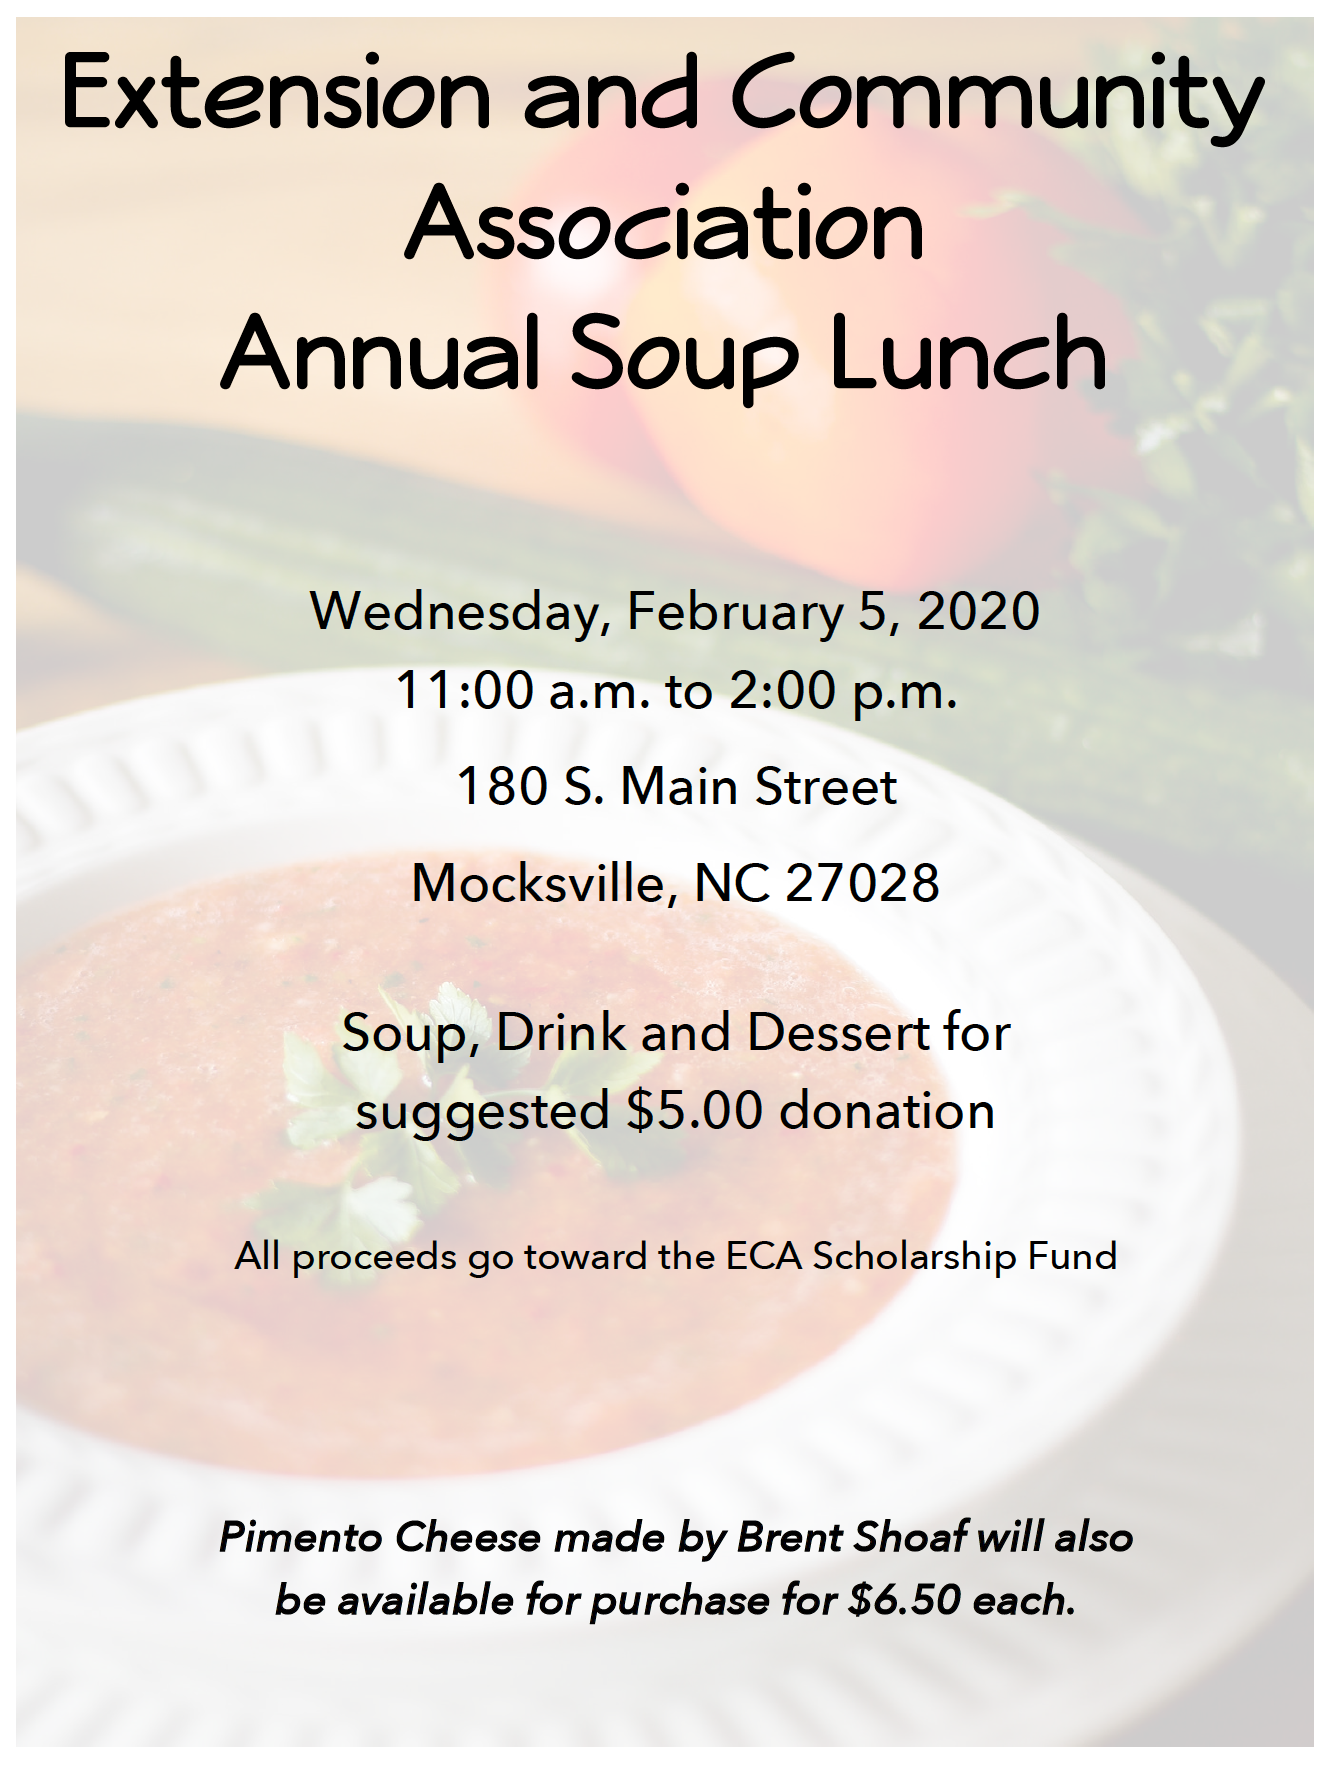 A white bowl on a white plate with tomato soup and parsley garnish. Cucumber and tomato in background. All made to 70 percent transparent with the words Extension and Community Association Annual Soup Lunch on Wednesday February 5th starting at 11 a.m. and going to 2 p.m. at 180 S. Main Street Mocksville, NC 27028 a 5 dollar donation is suggested for soup, dessert, and drink. Pimento cheese by Brent Shoaf will be available for purchase at $6.50 each.